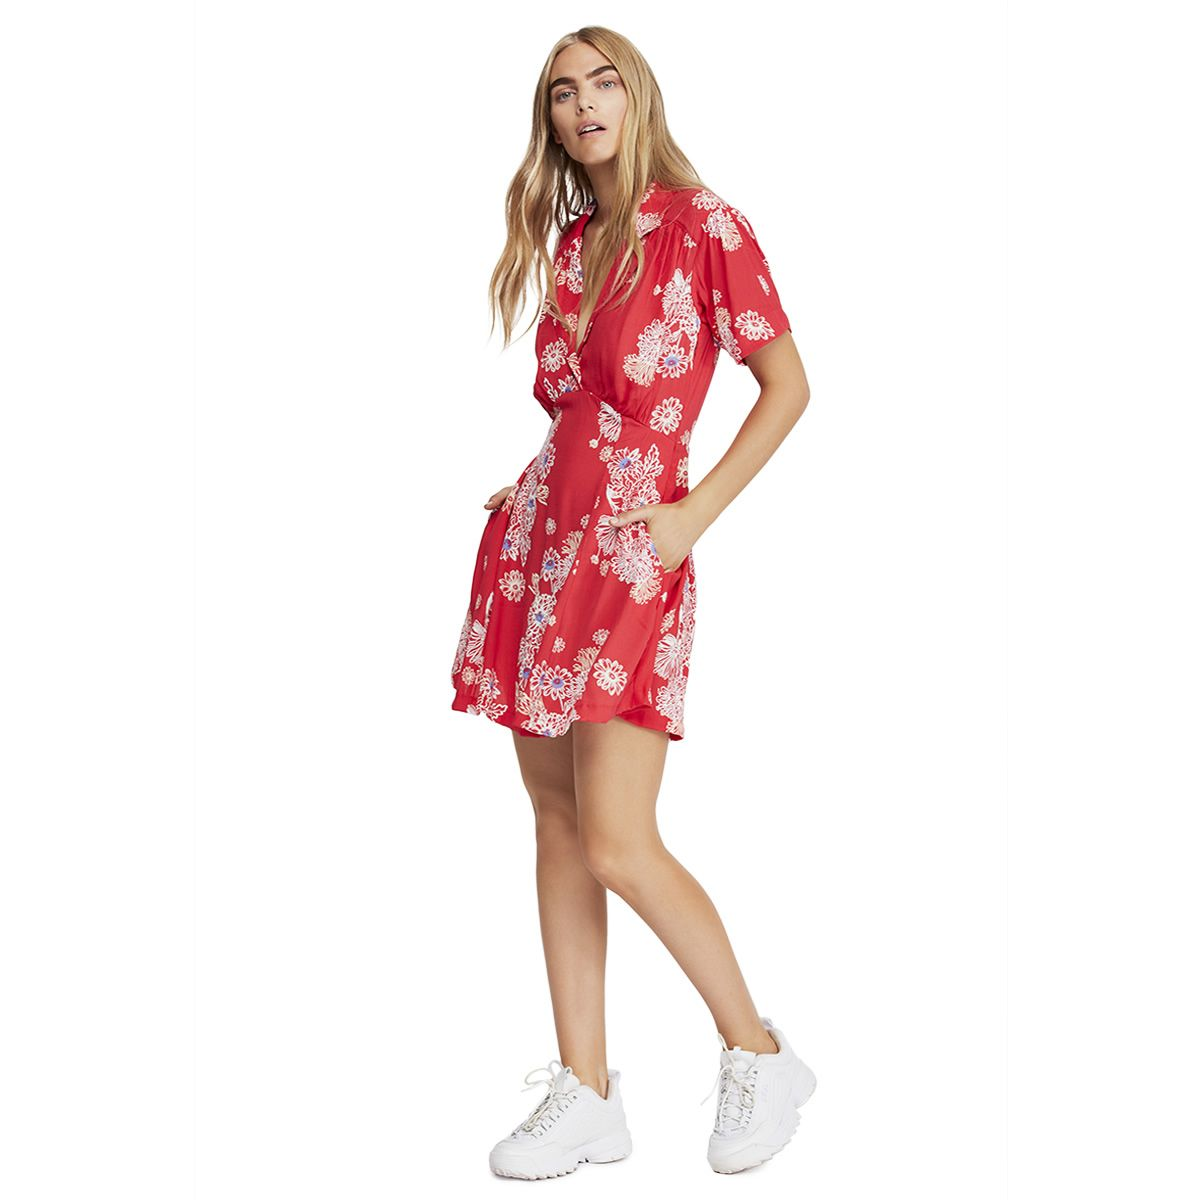 a46391a5c62 Free People Clothing - Womens Apparel - Macy s